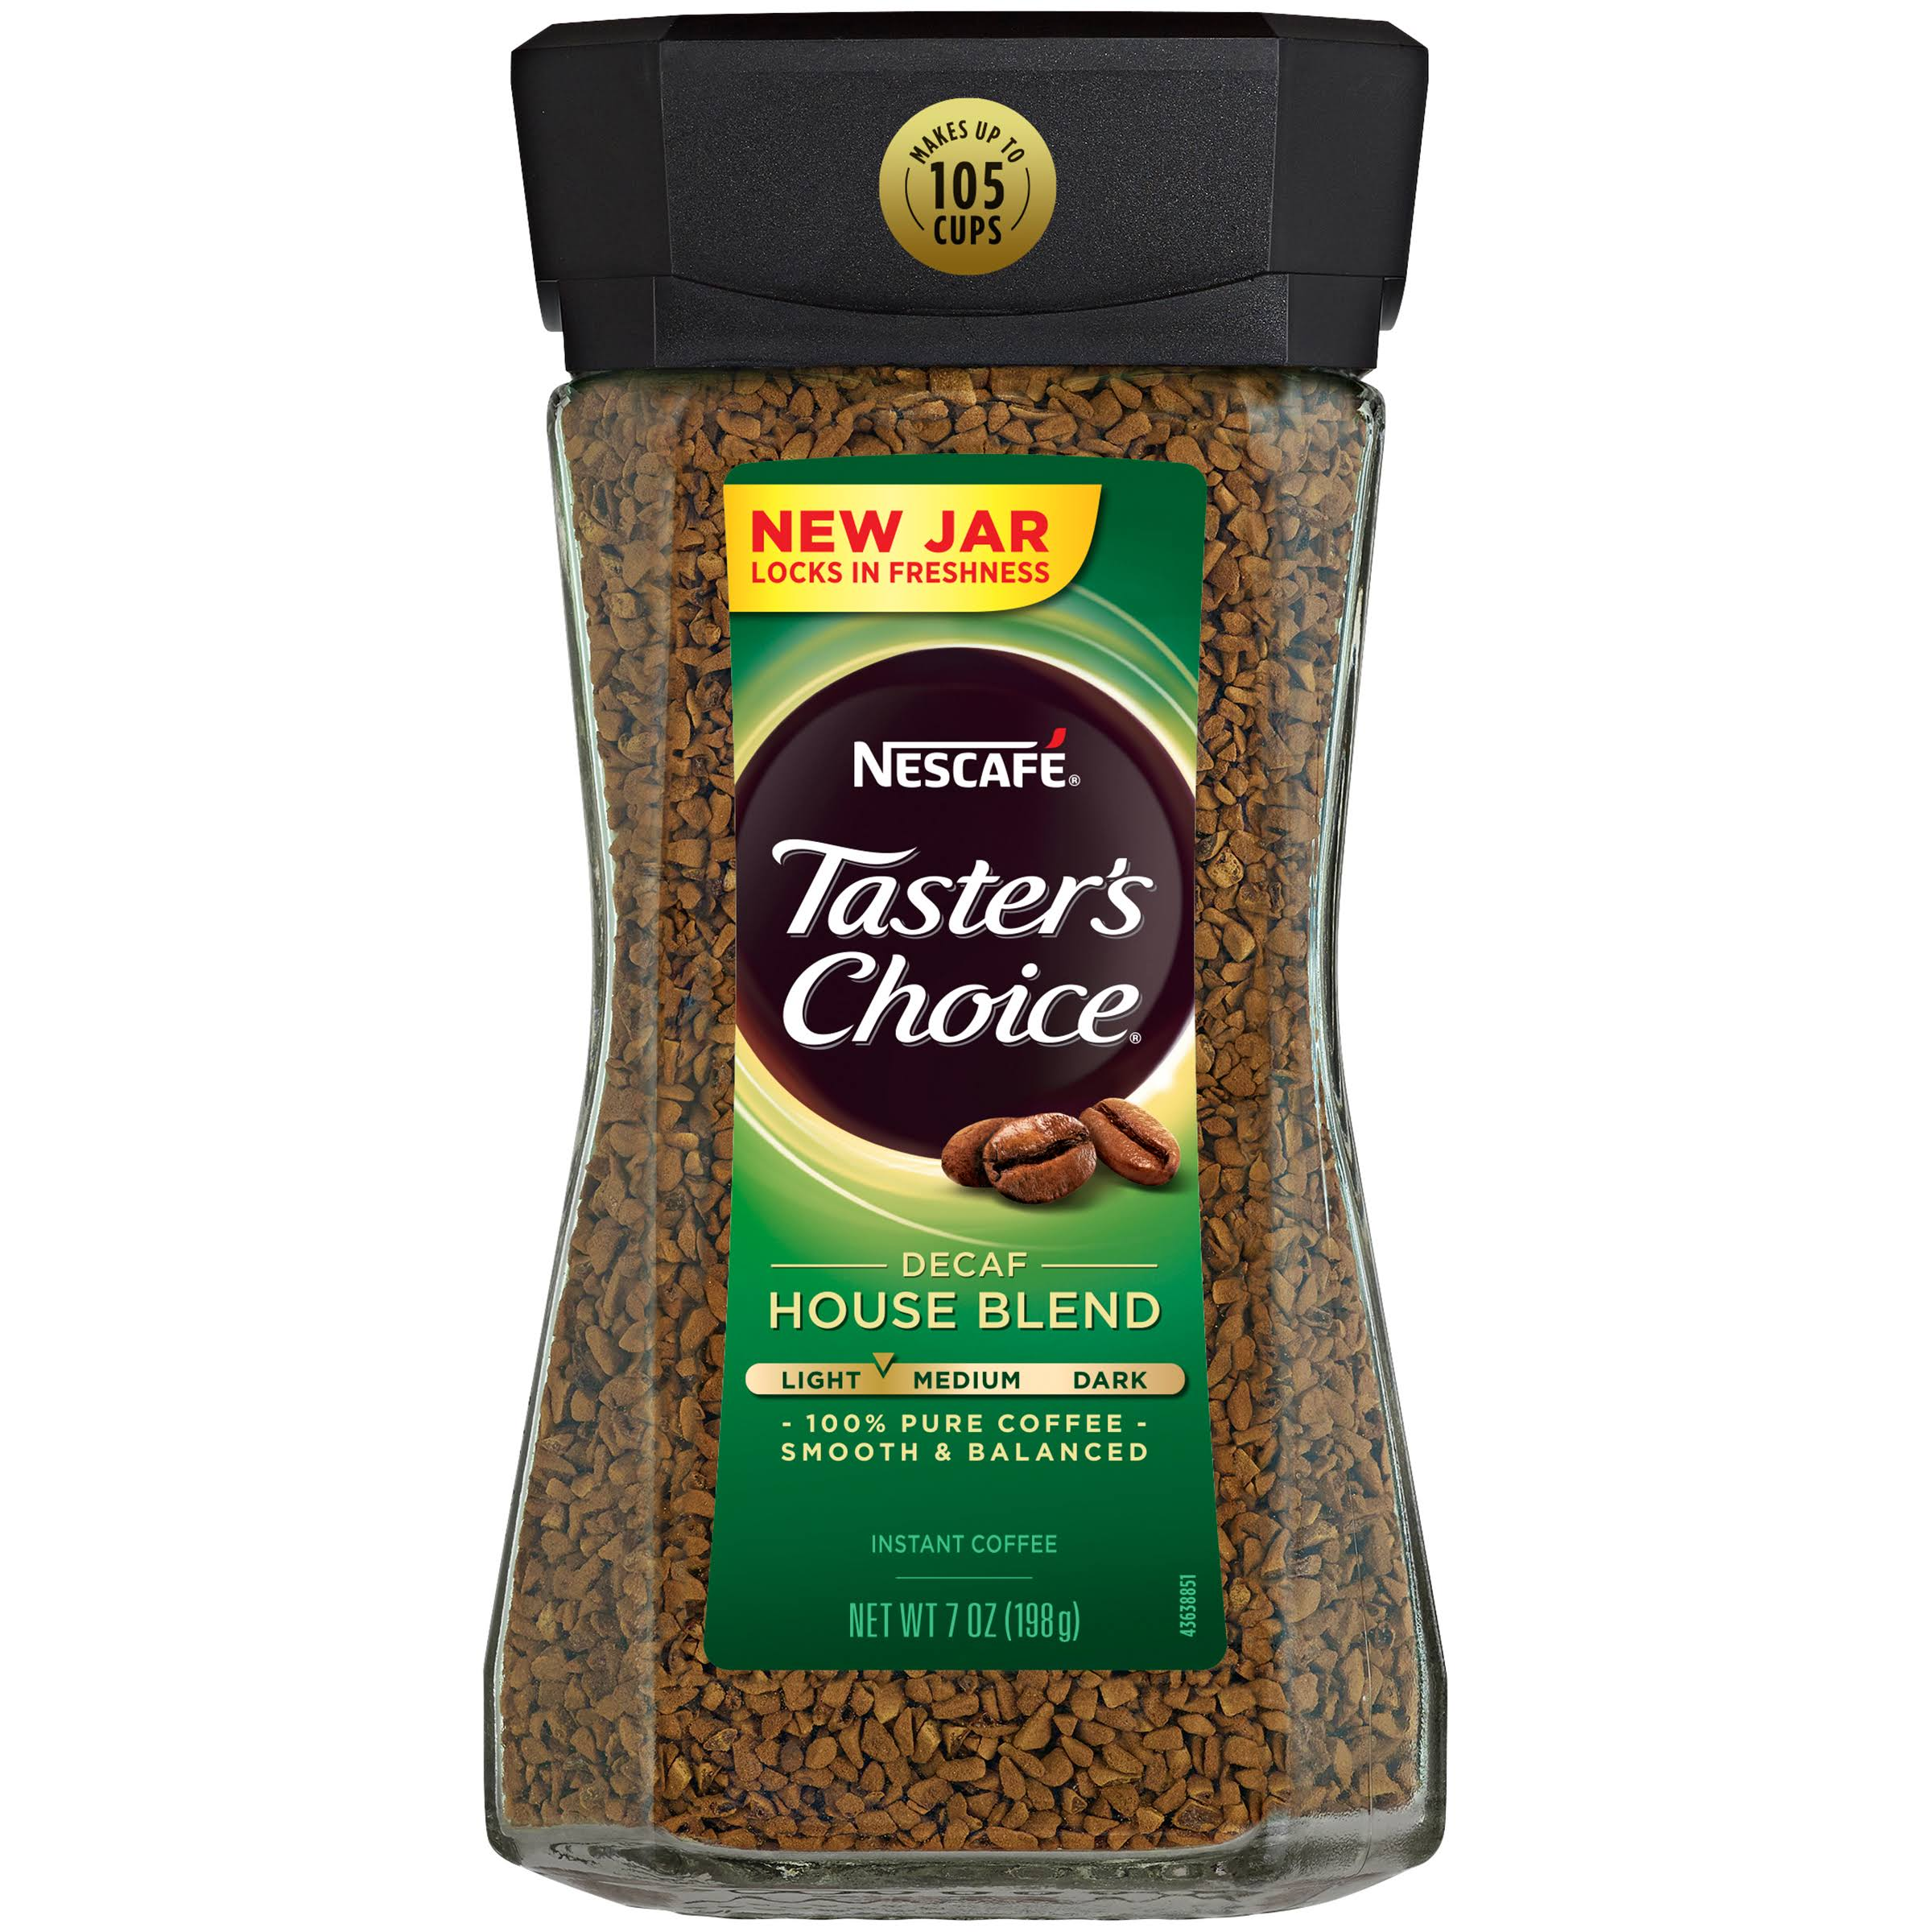 Nescafe Taster's Choice Decaf Instant Coffee - House Blend, 7oz